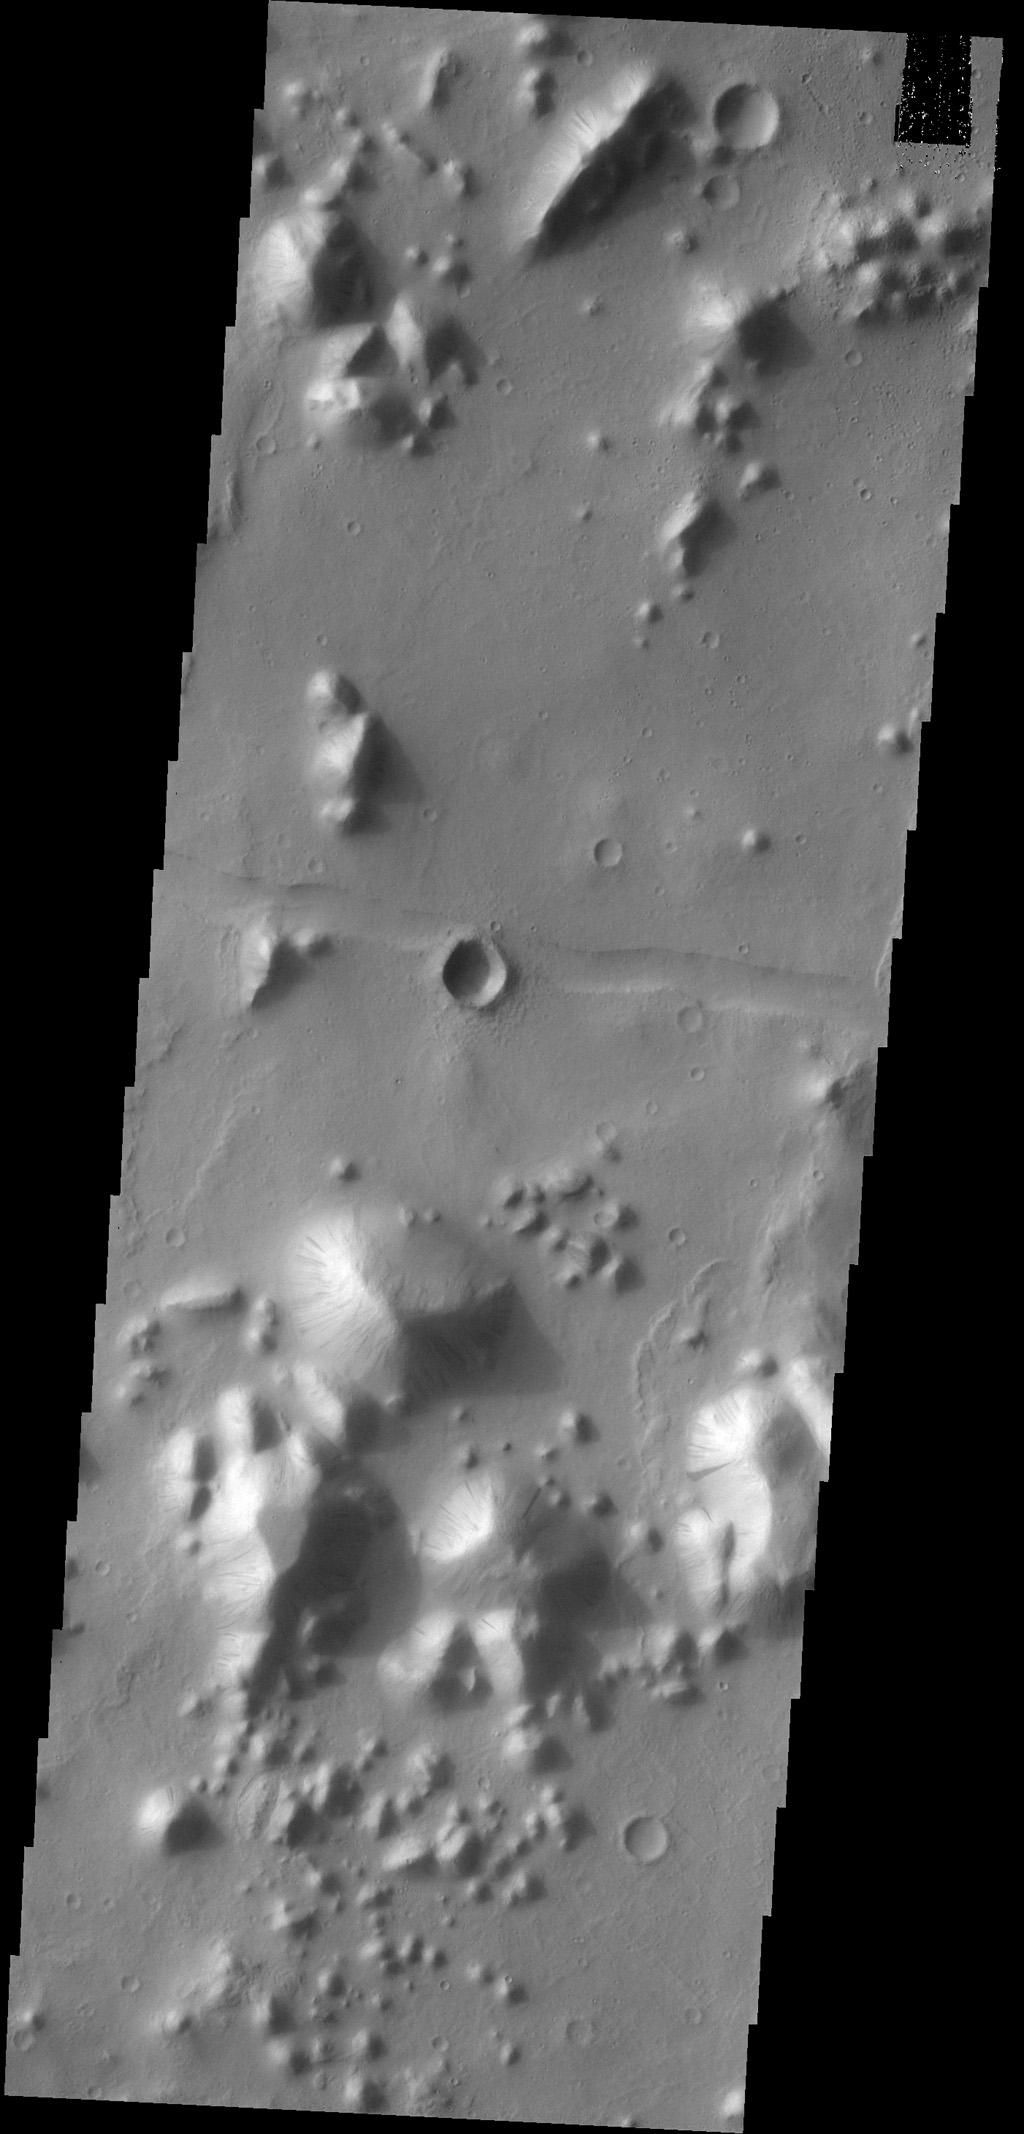 Dark slope streaks mark many of the hills in this image captured by NASA's 2001 Mars Odyssey spacecraft. This region of hills is called Tartarus Colles. The term colles means small hills or knobs.